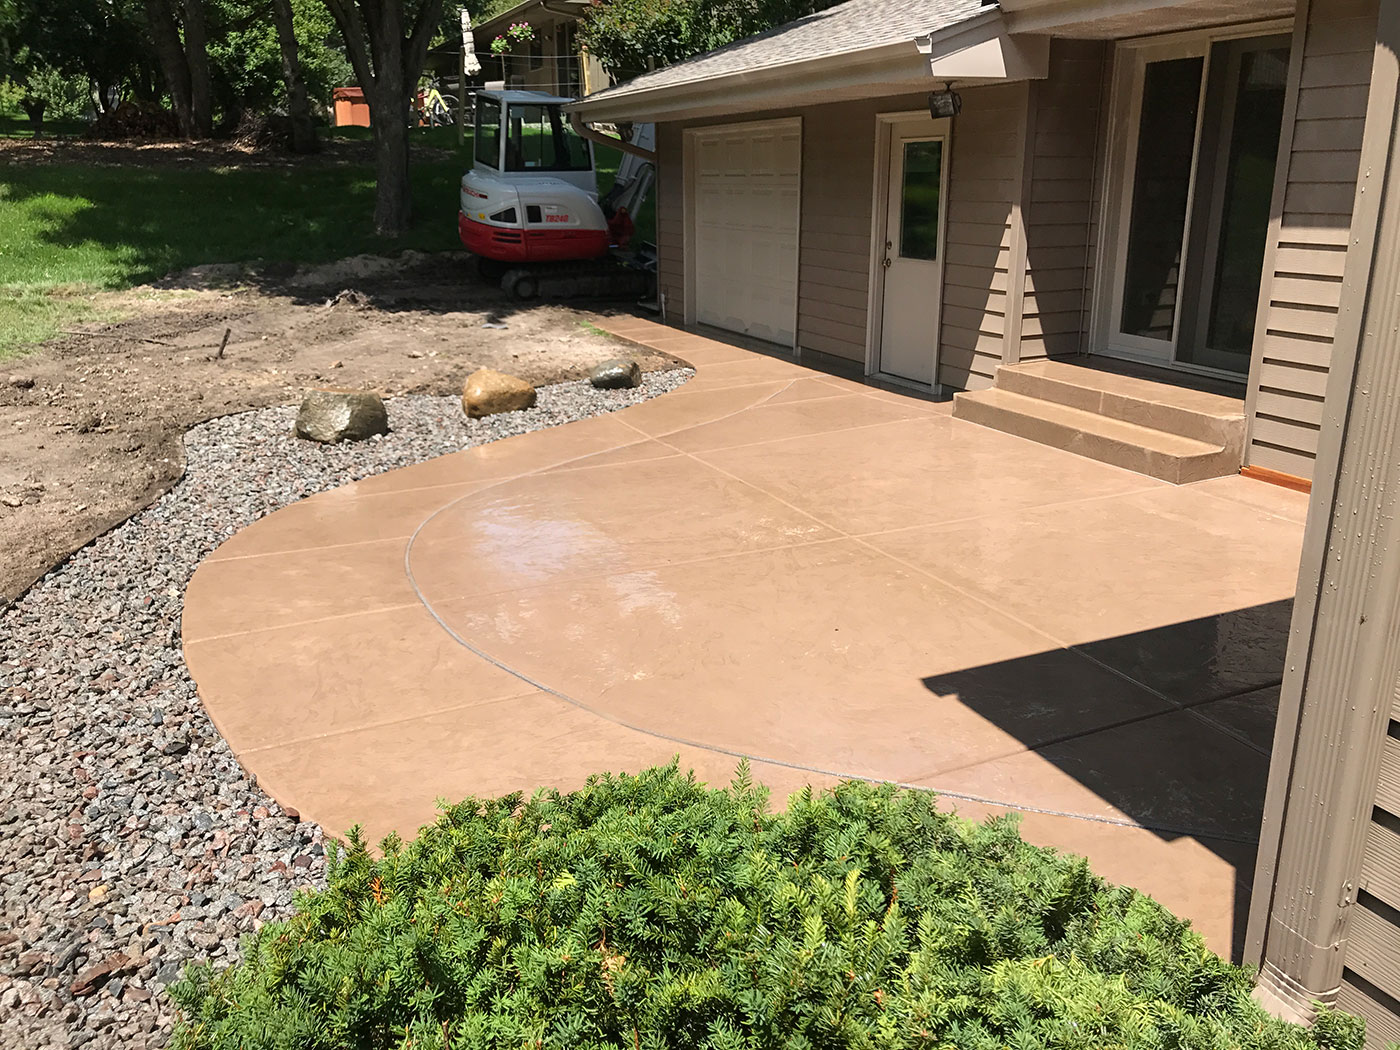 Leave It To The Professionals At Harold Concrete U2013 Harold J. Pietig U0026 Sons,  Inc. And We Will Get The Job Done Right And On Schedule.